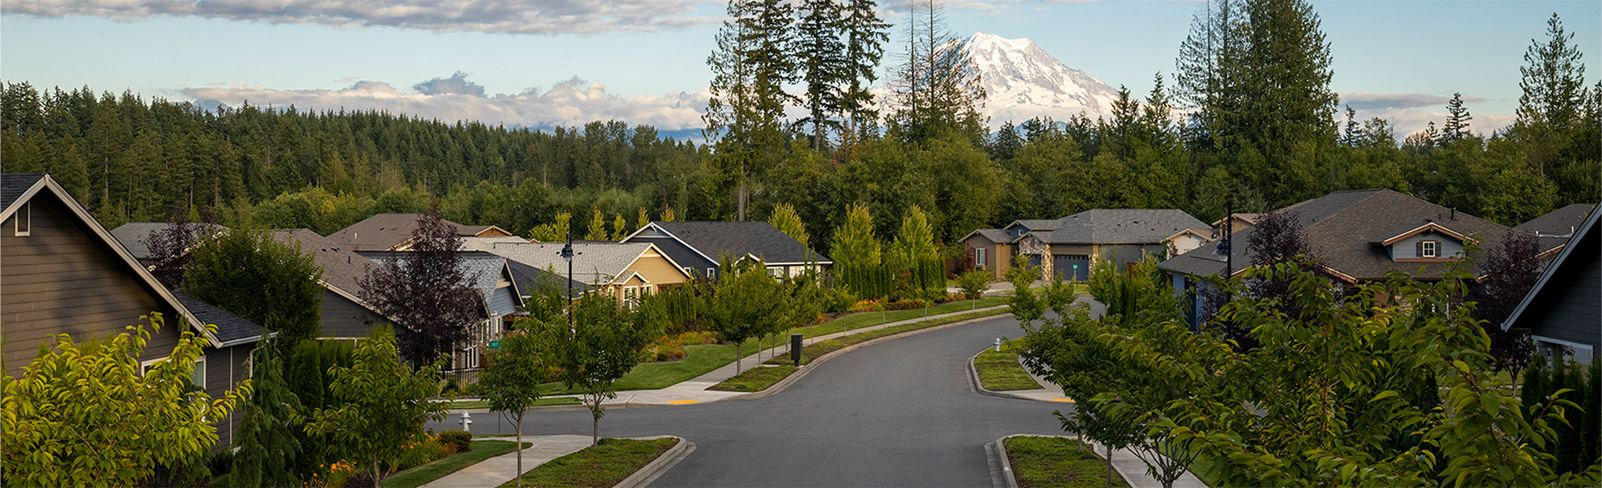 View of Mount Rainier from Tehaleh Neighborhood with road going through community past homes.